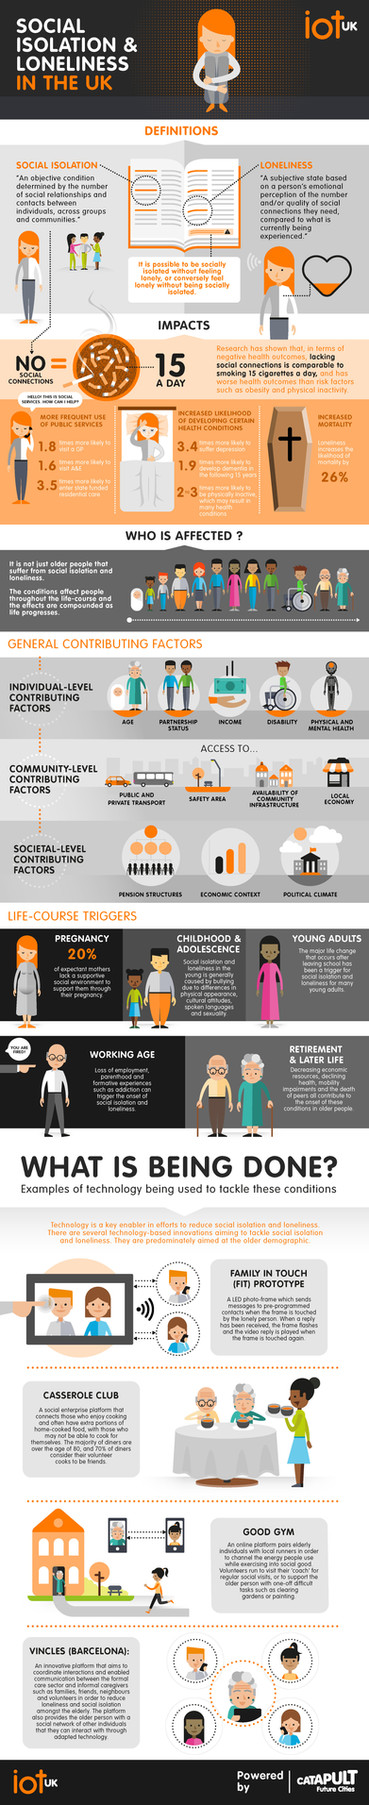 IoTUK Social Isolation Infographic.jpg